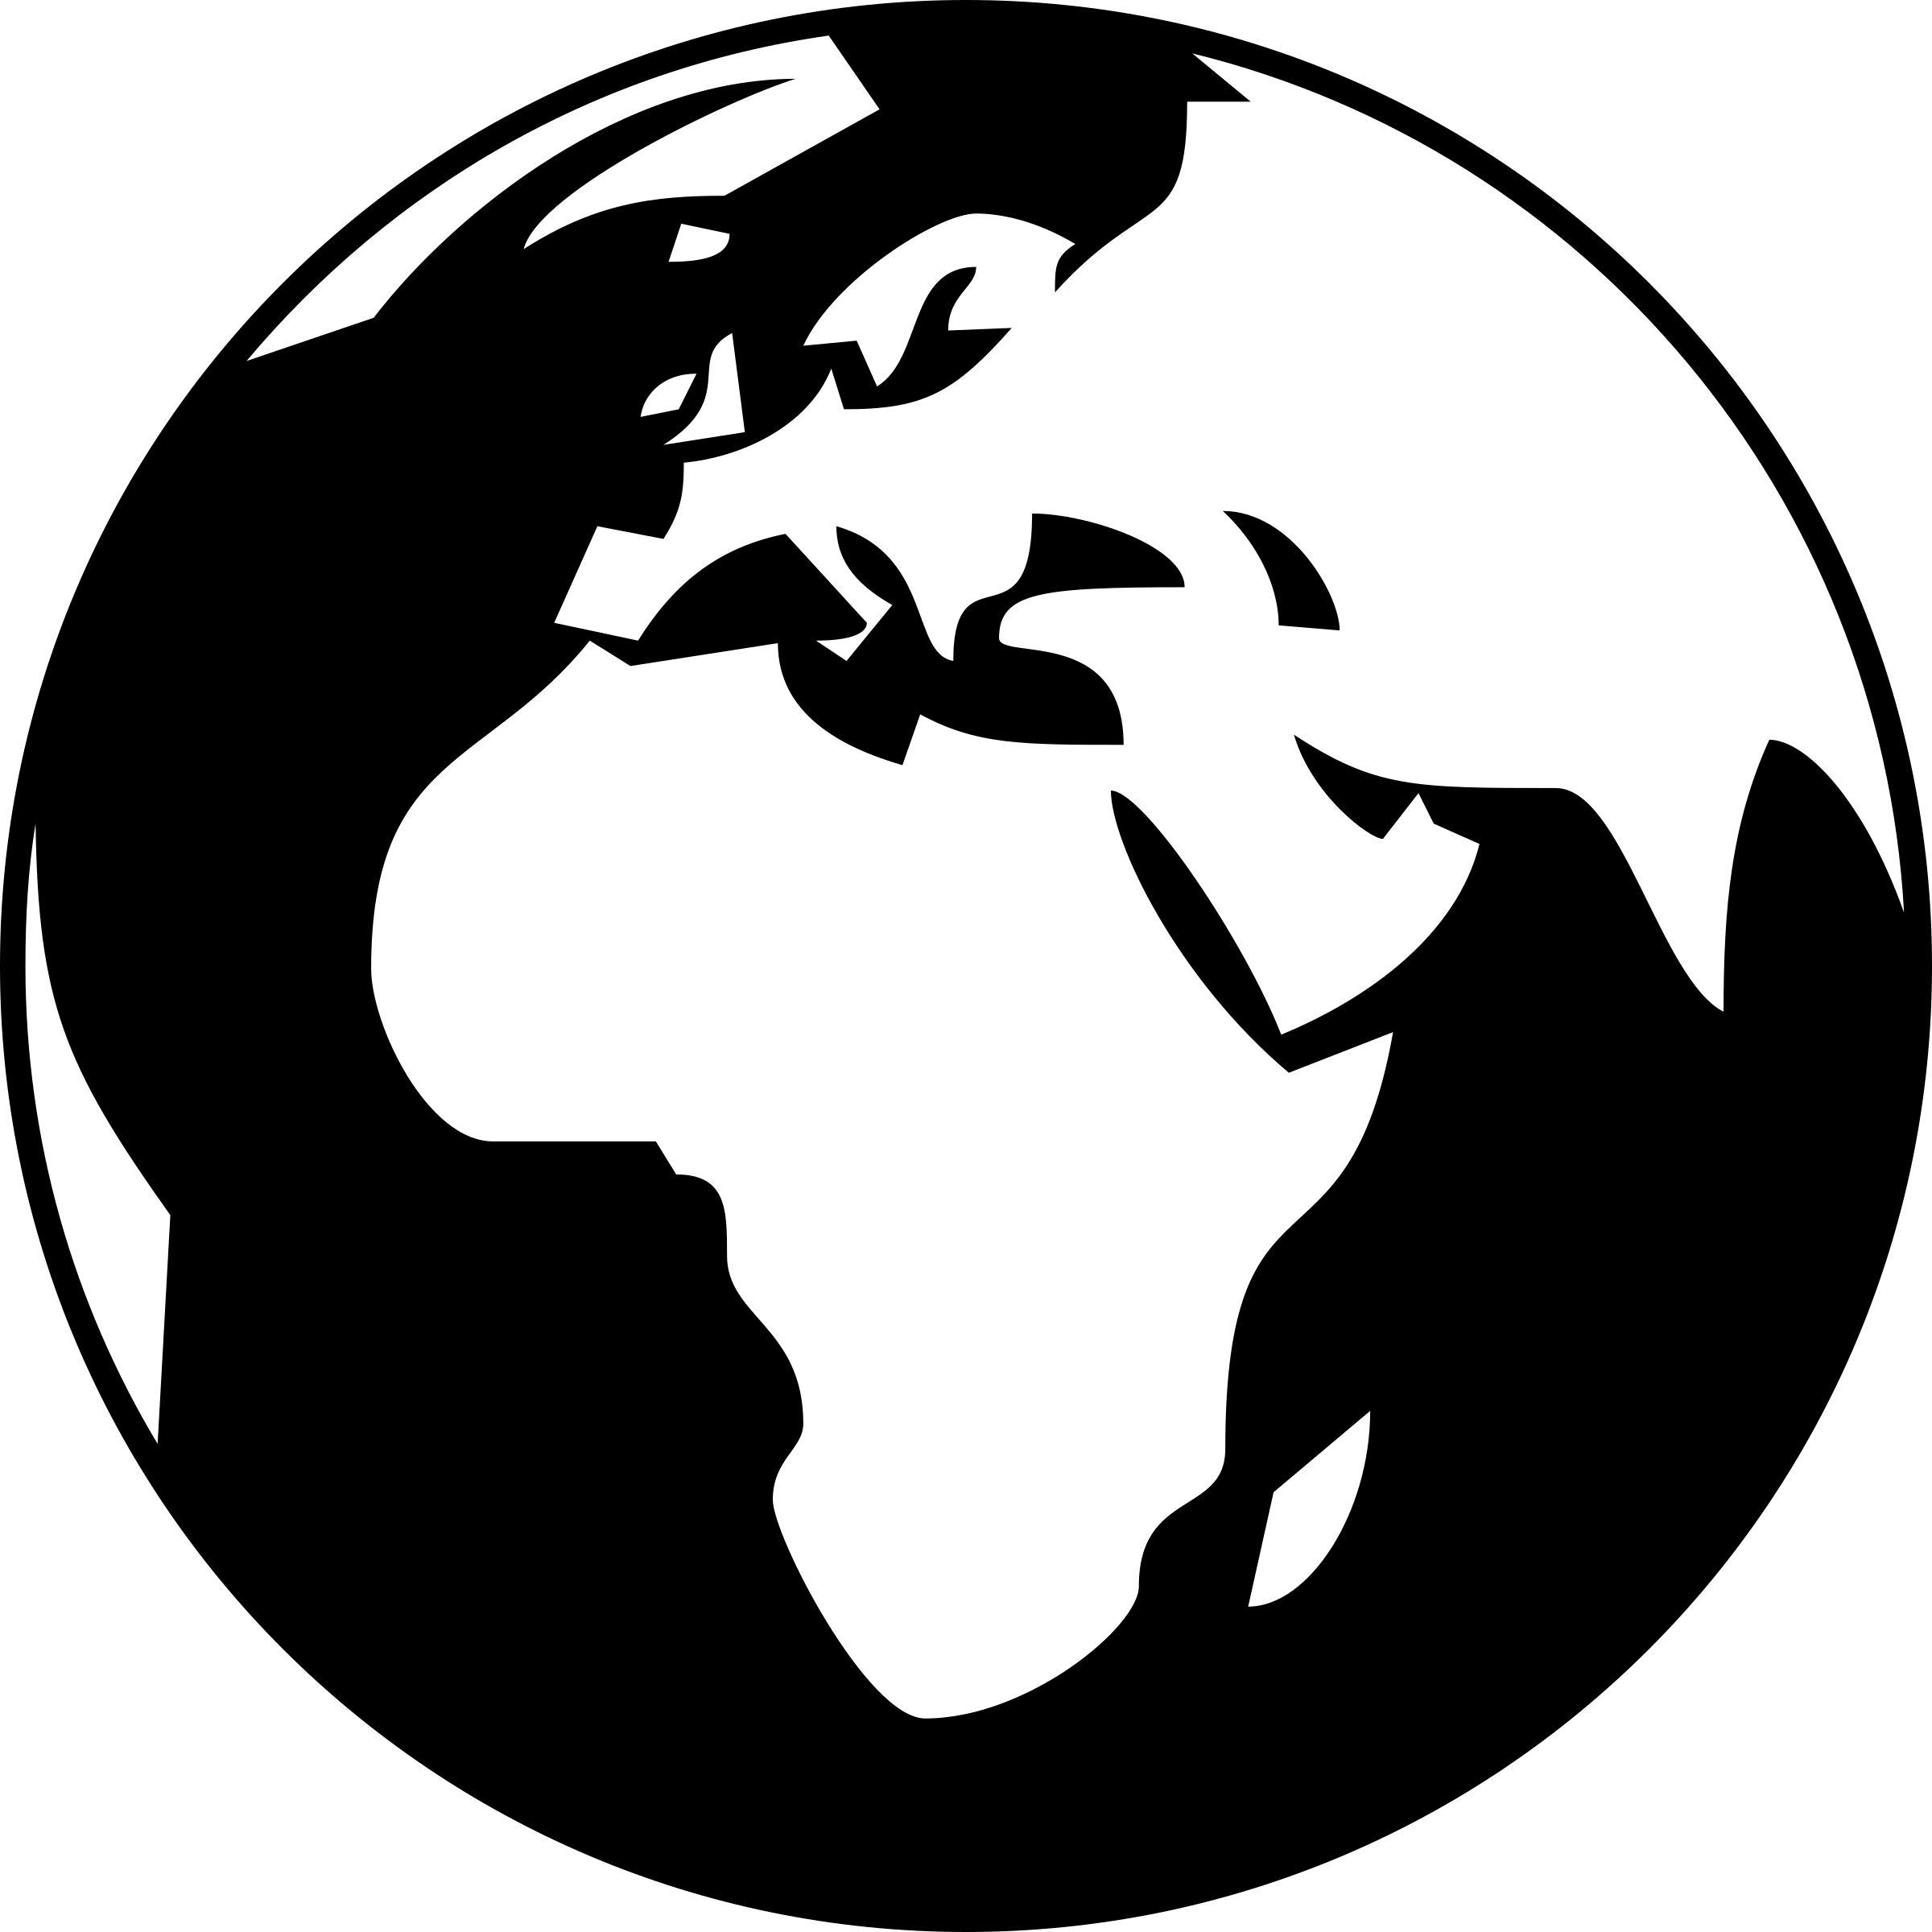 Globe clipart black and white. Simple showing africa asia